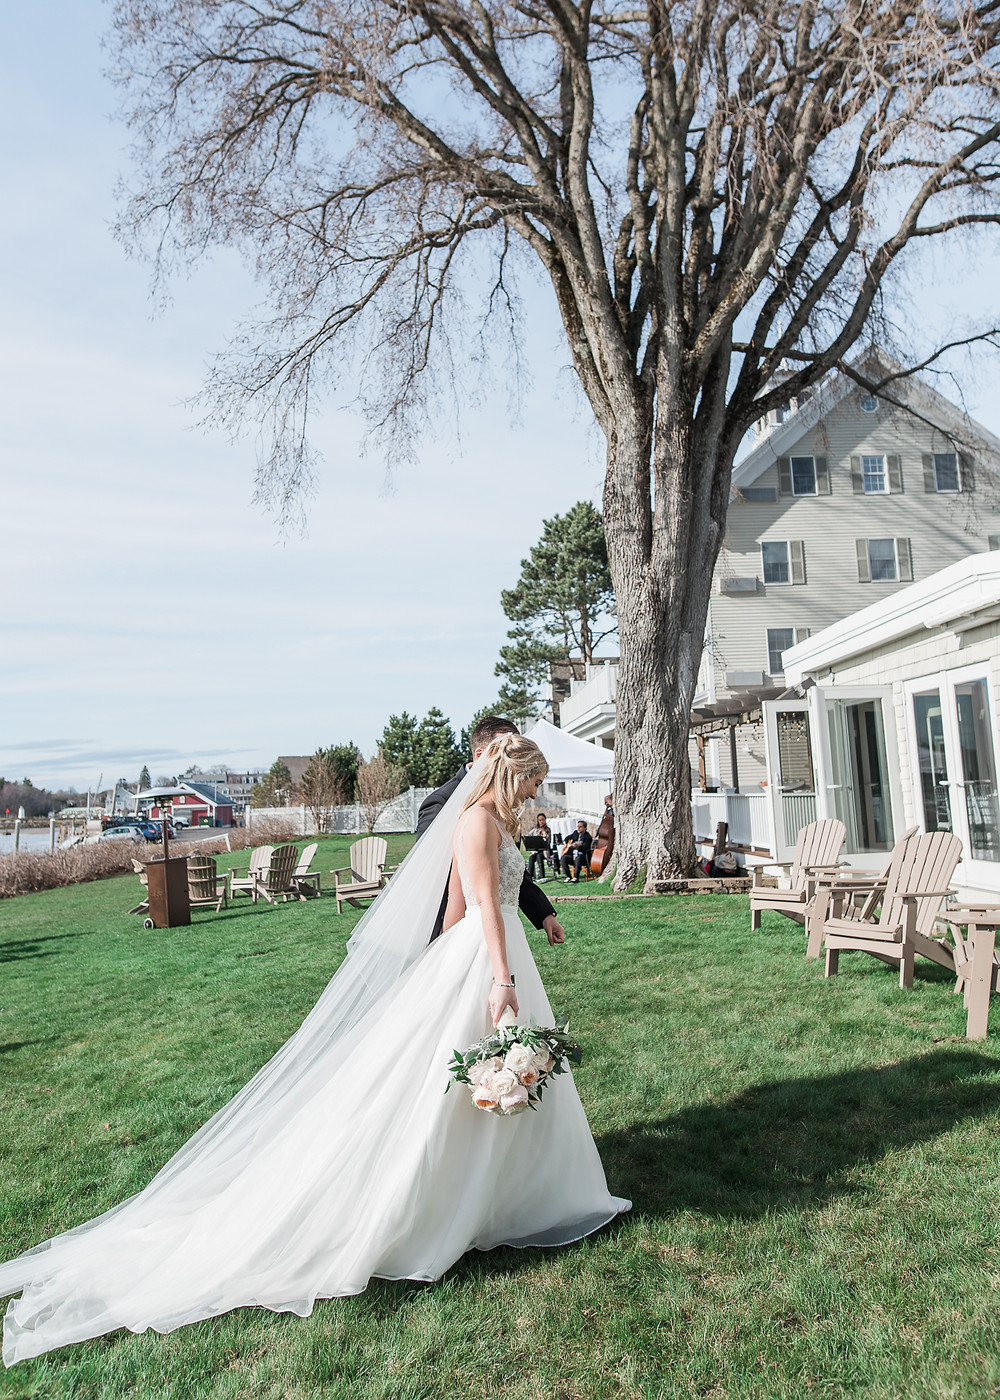 Wedding photography at the Breakwater Inn in Kennebunkport, Maine